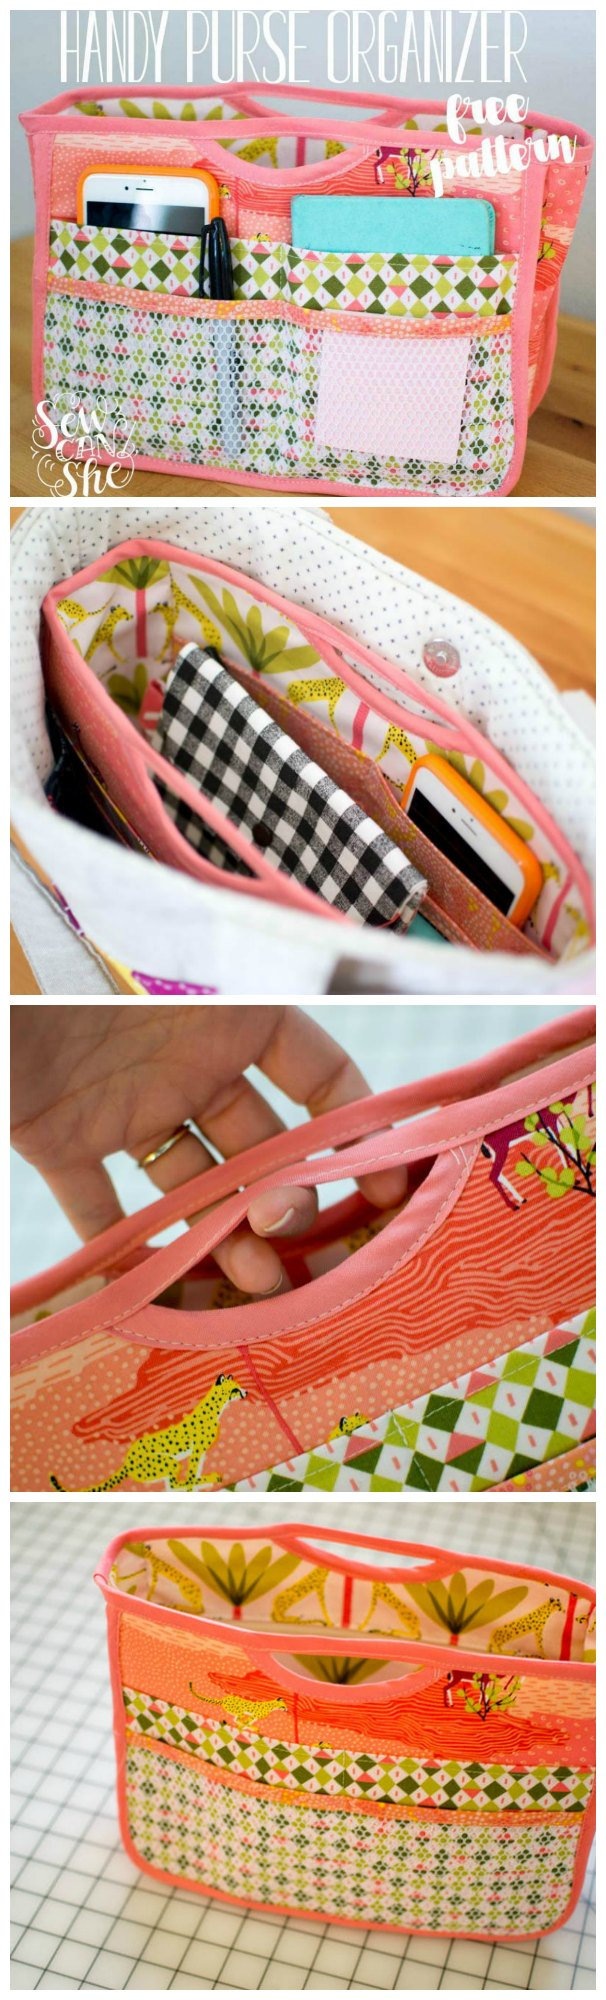 Handy purse organizer free pattern sew modern bags free sewing pattern for this smart purse organizer i love using these to transfer all jeuxipadfo Image collections